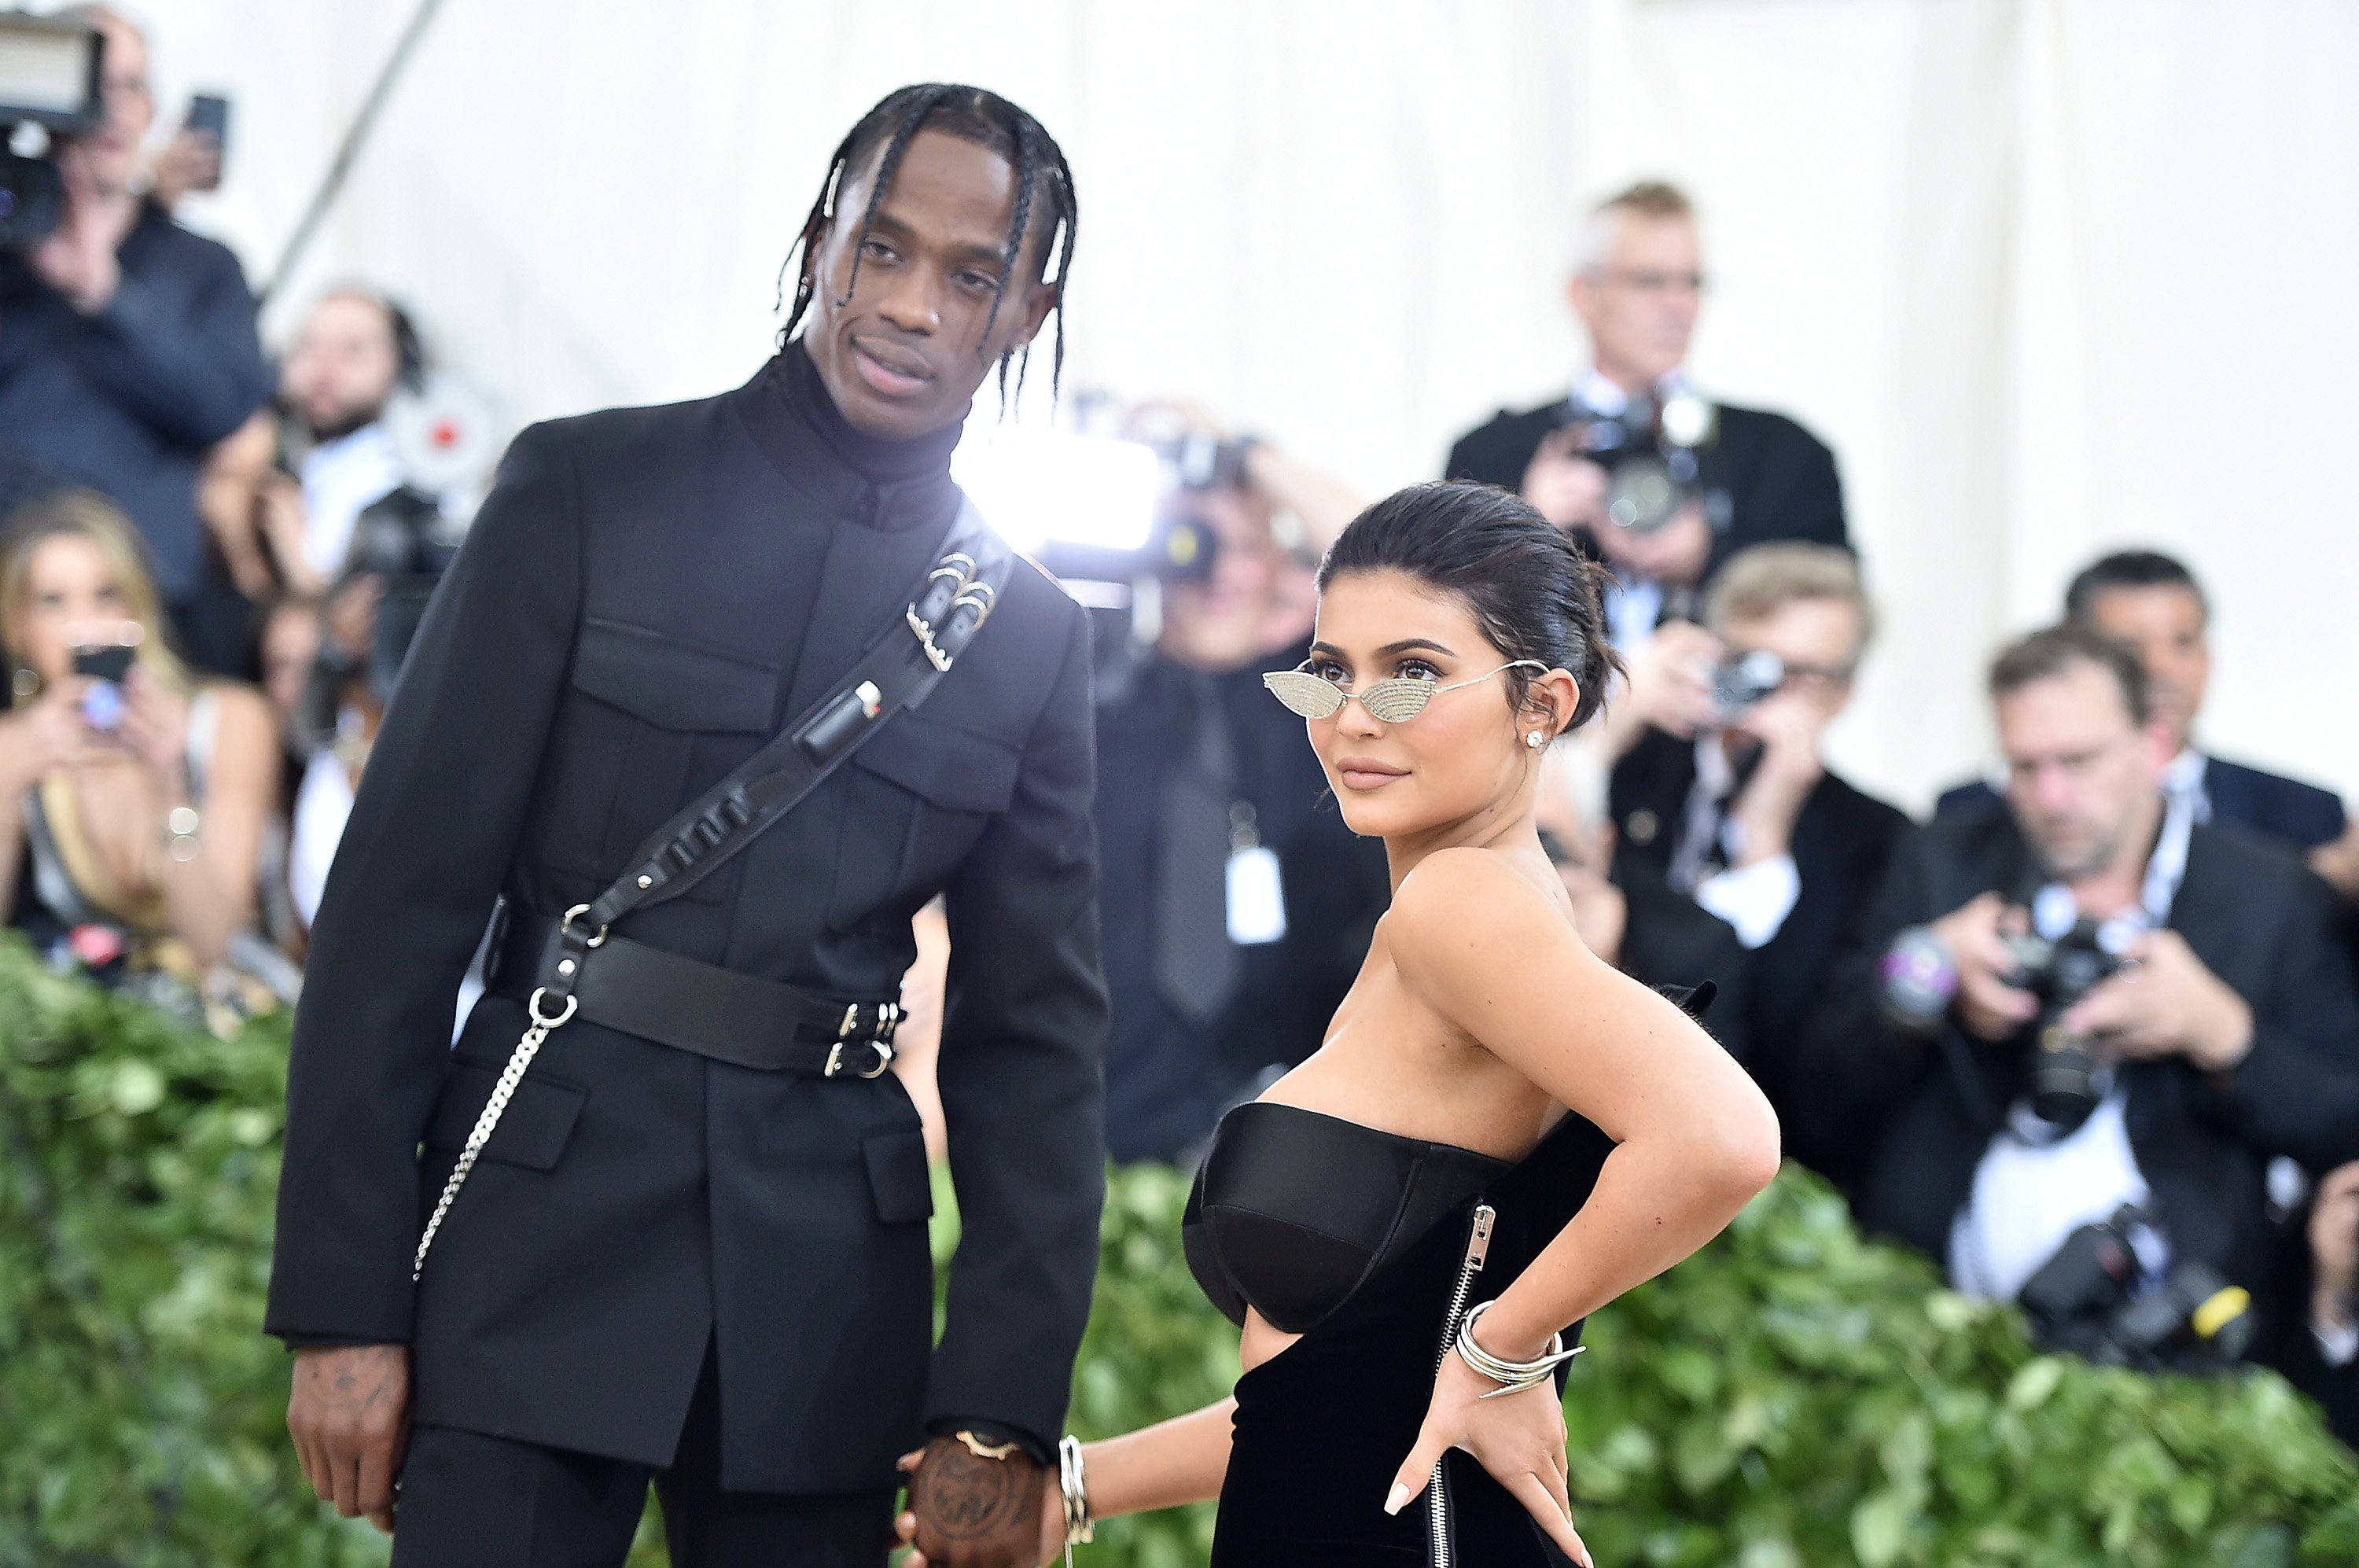 Travis Scott and Kylie Jenner attend the Heavenly Bodies: Fashion & The Catholic Imagination Costume Institute Gala at The Metropolitan Museum of Art on May 7, 2018 | Photo: GettyImages